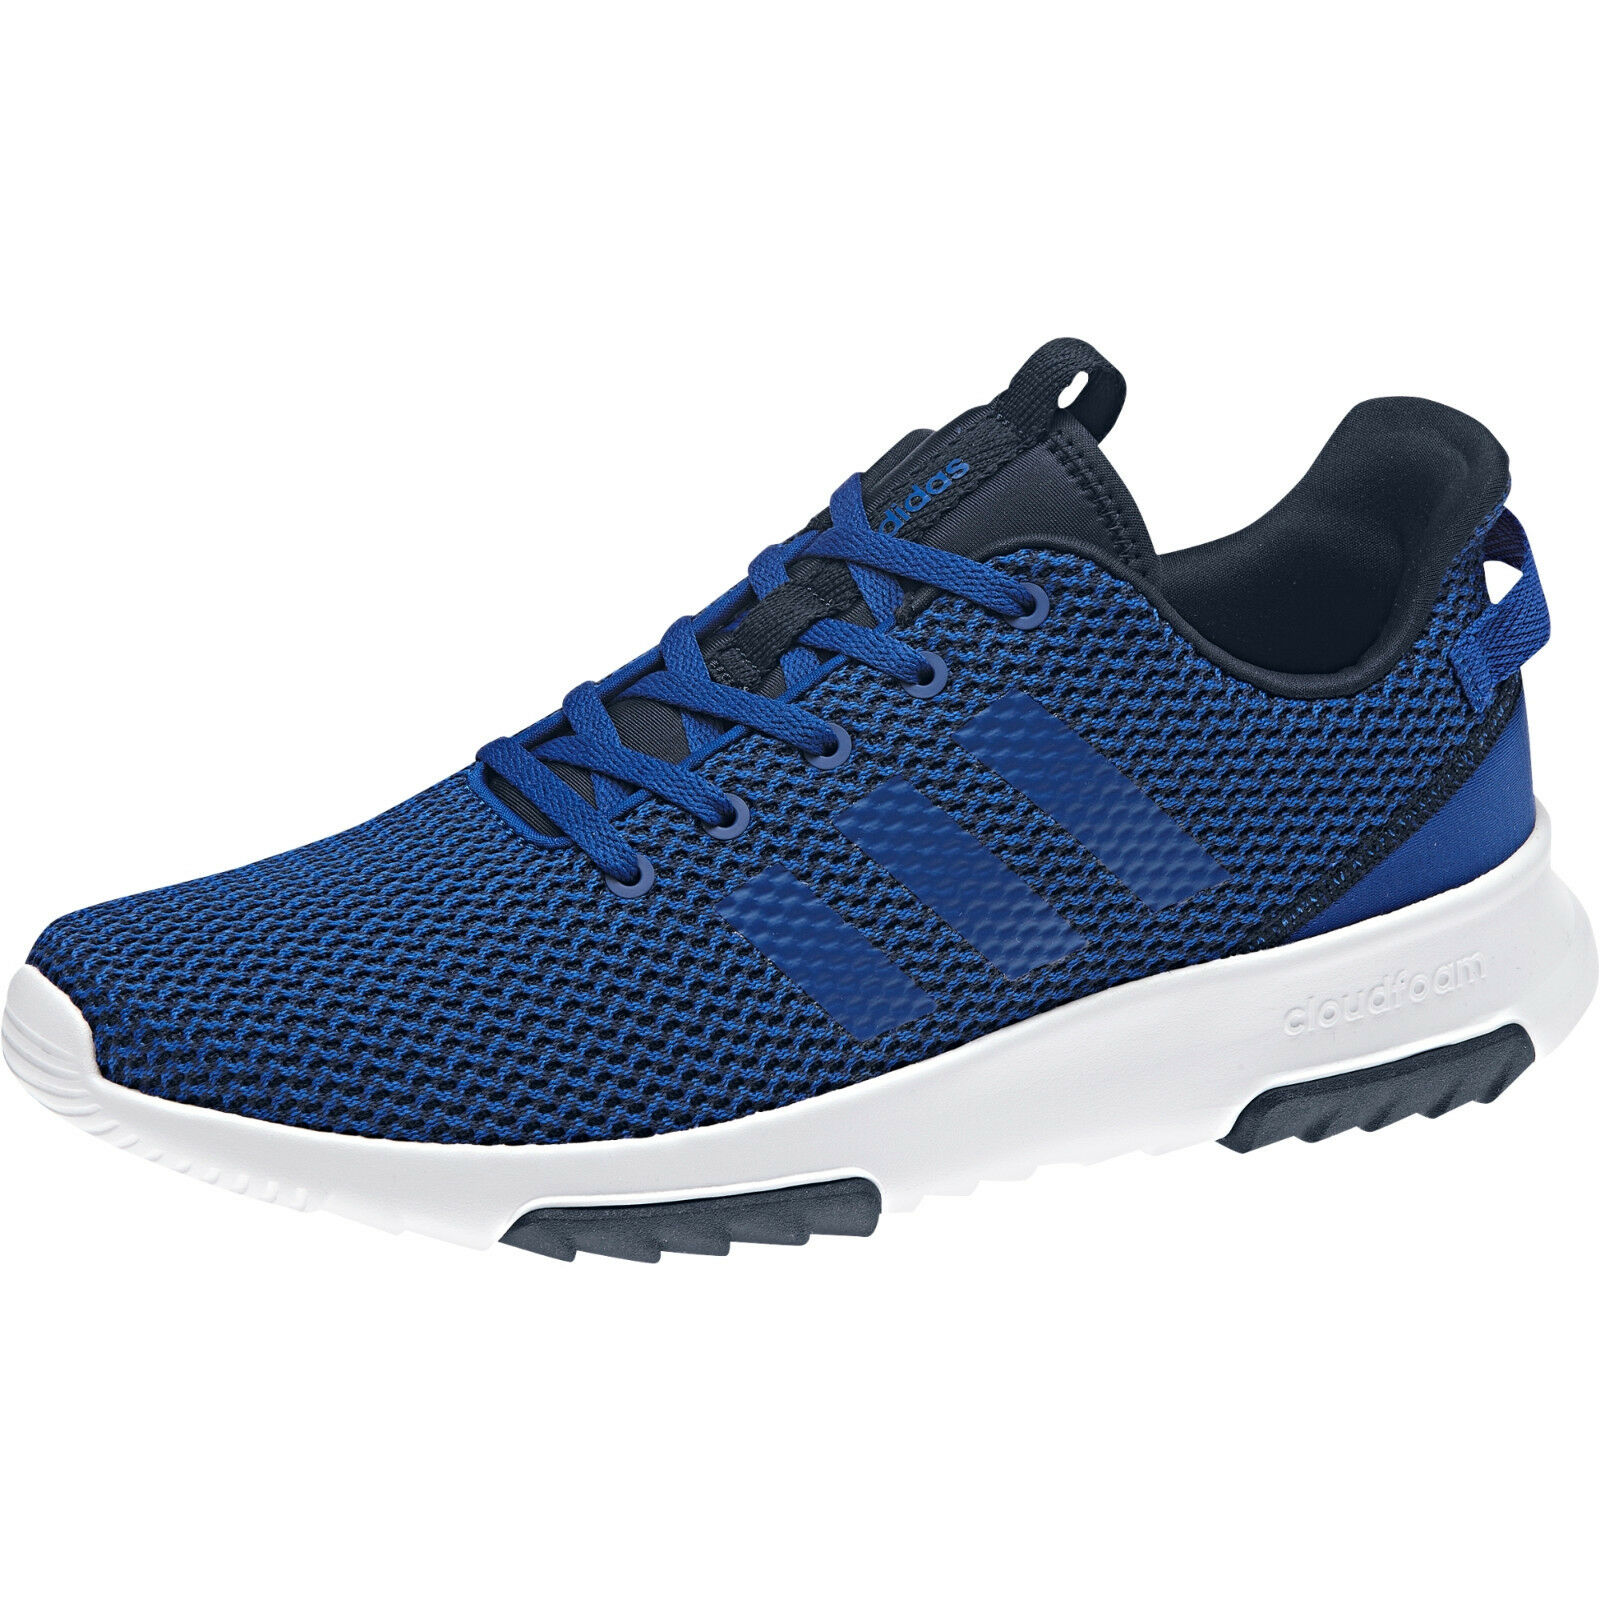 Adidas Neo Uomo Shoes Cloudfoam Racer TR Running Training Trainer Blue DB0691 New